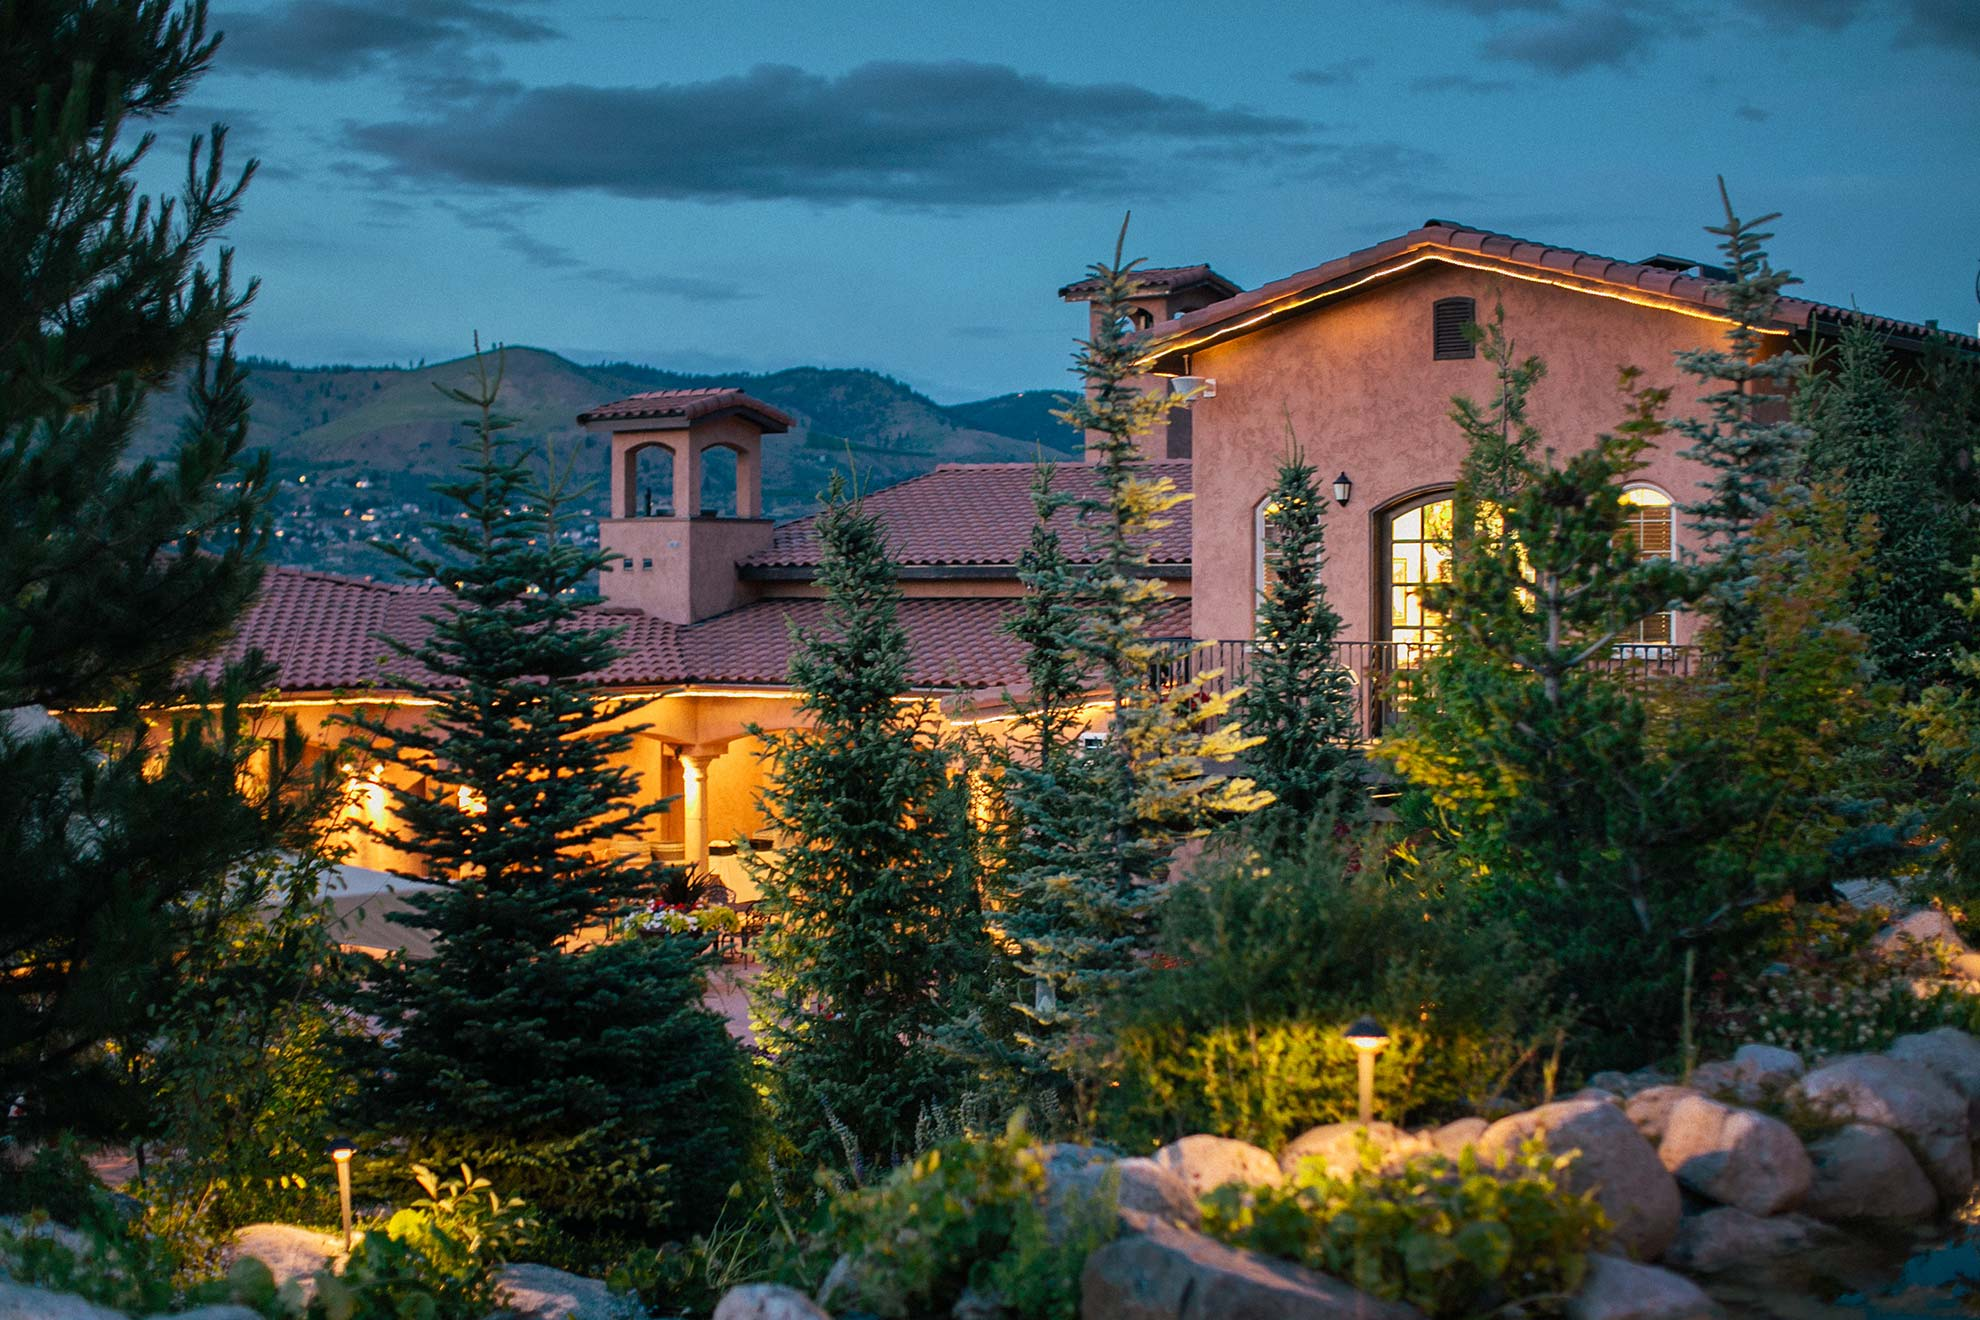 Lake Chelan Winery Photo at Sunset